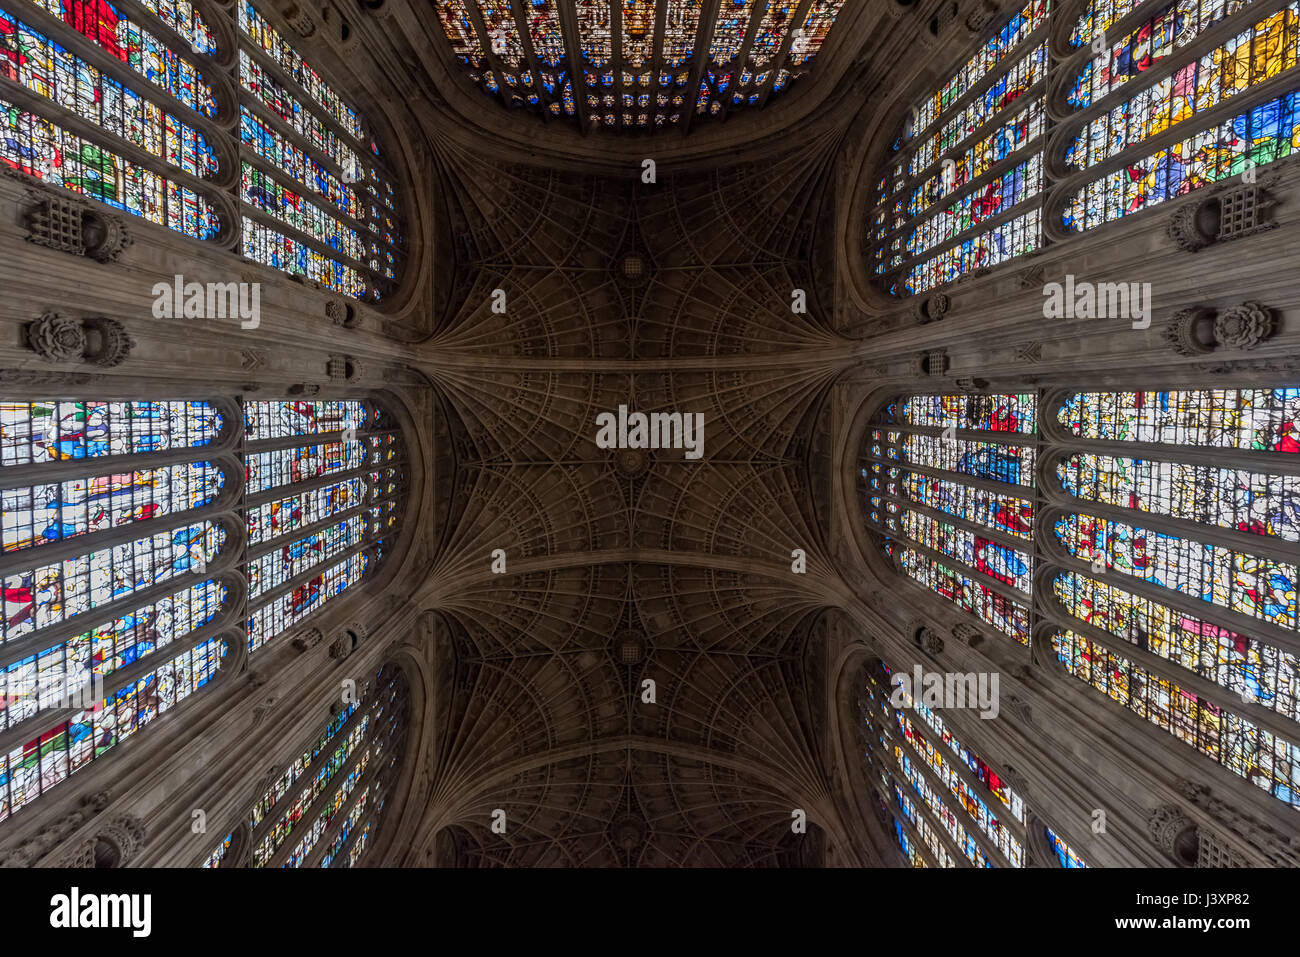 King's College Chapel from inside - Stock Image